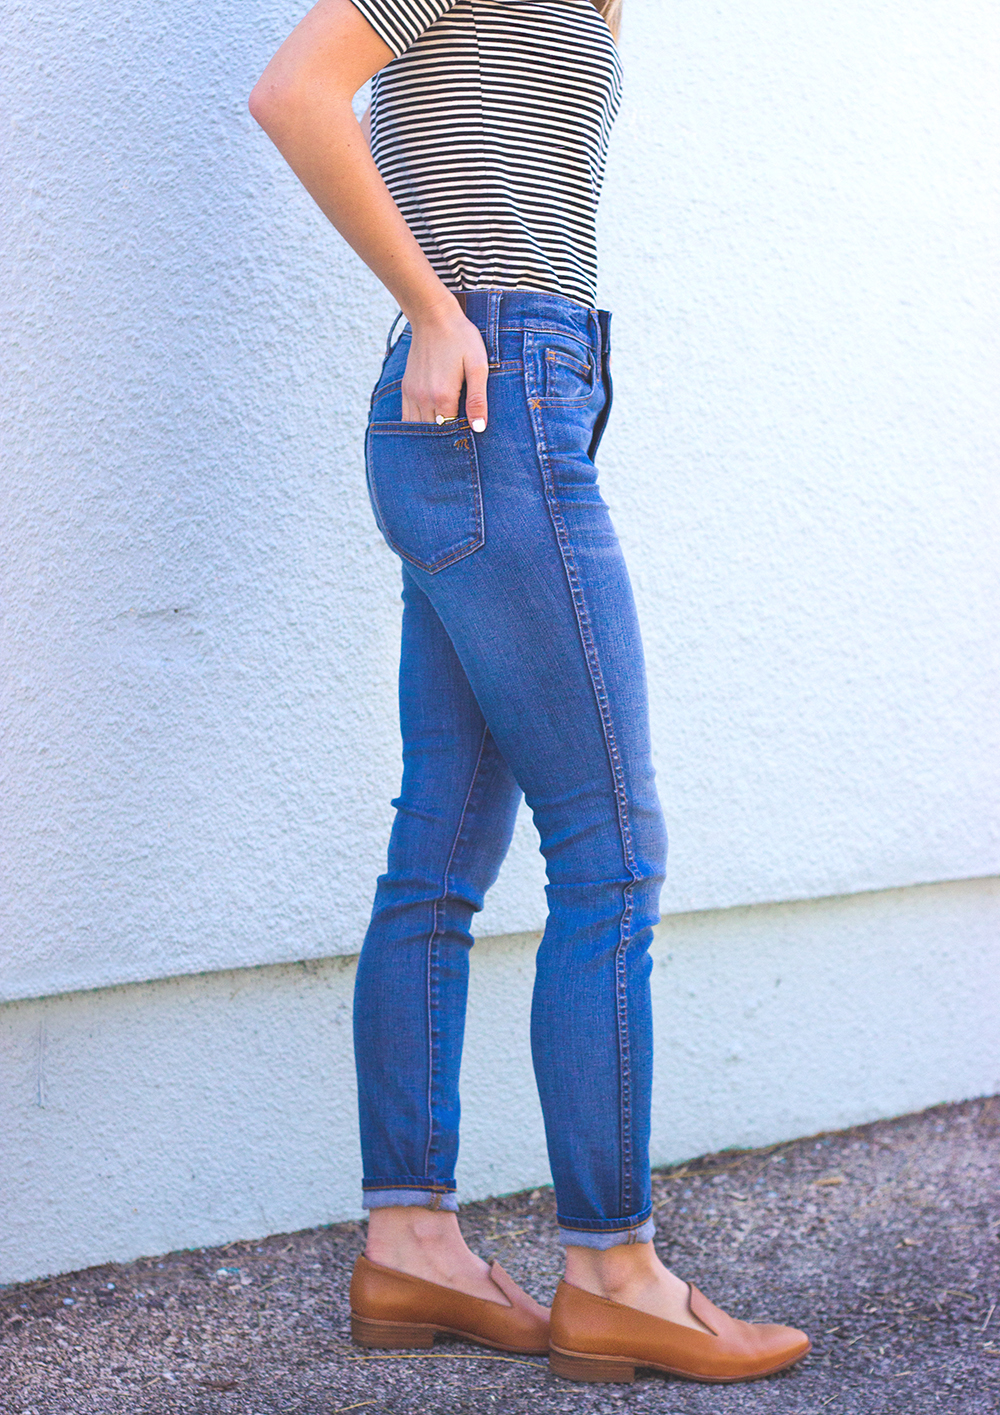 livvyland-blog-olivia-watson-austin-texas-fashion-blogger-madewell-high-riser-skinny-crop-jeans-in-bayview-tan-loafer-flats-outfit-4